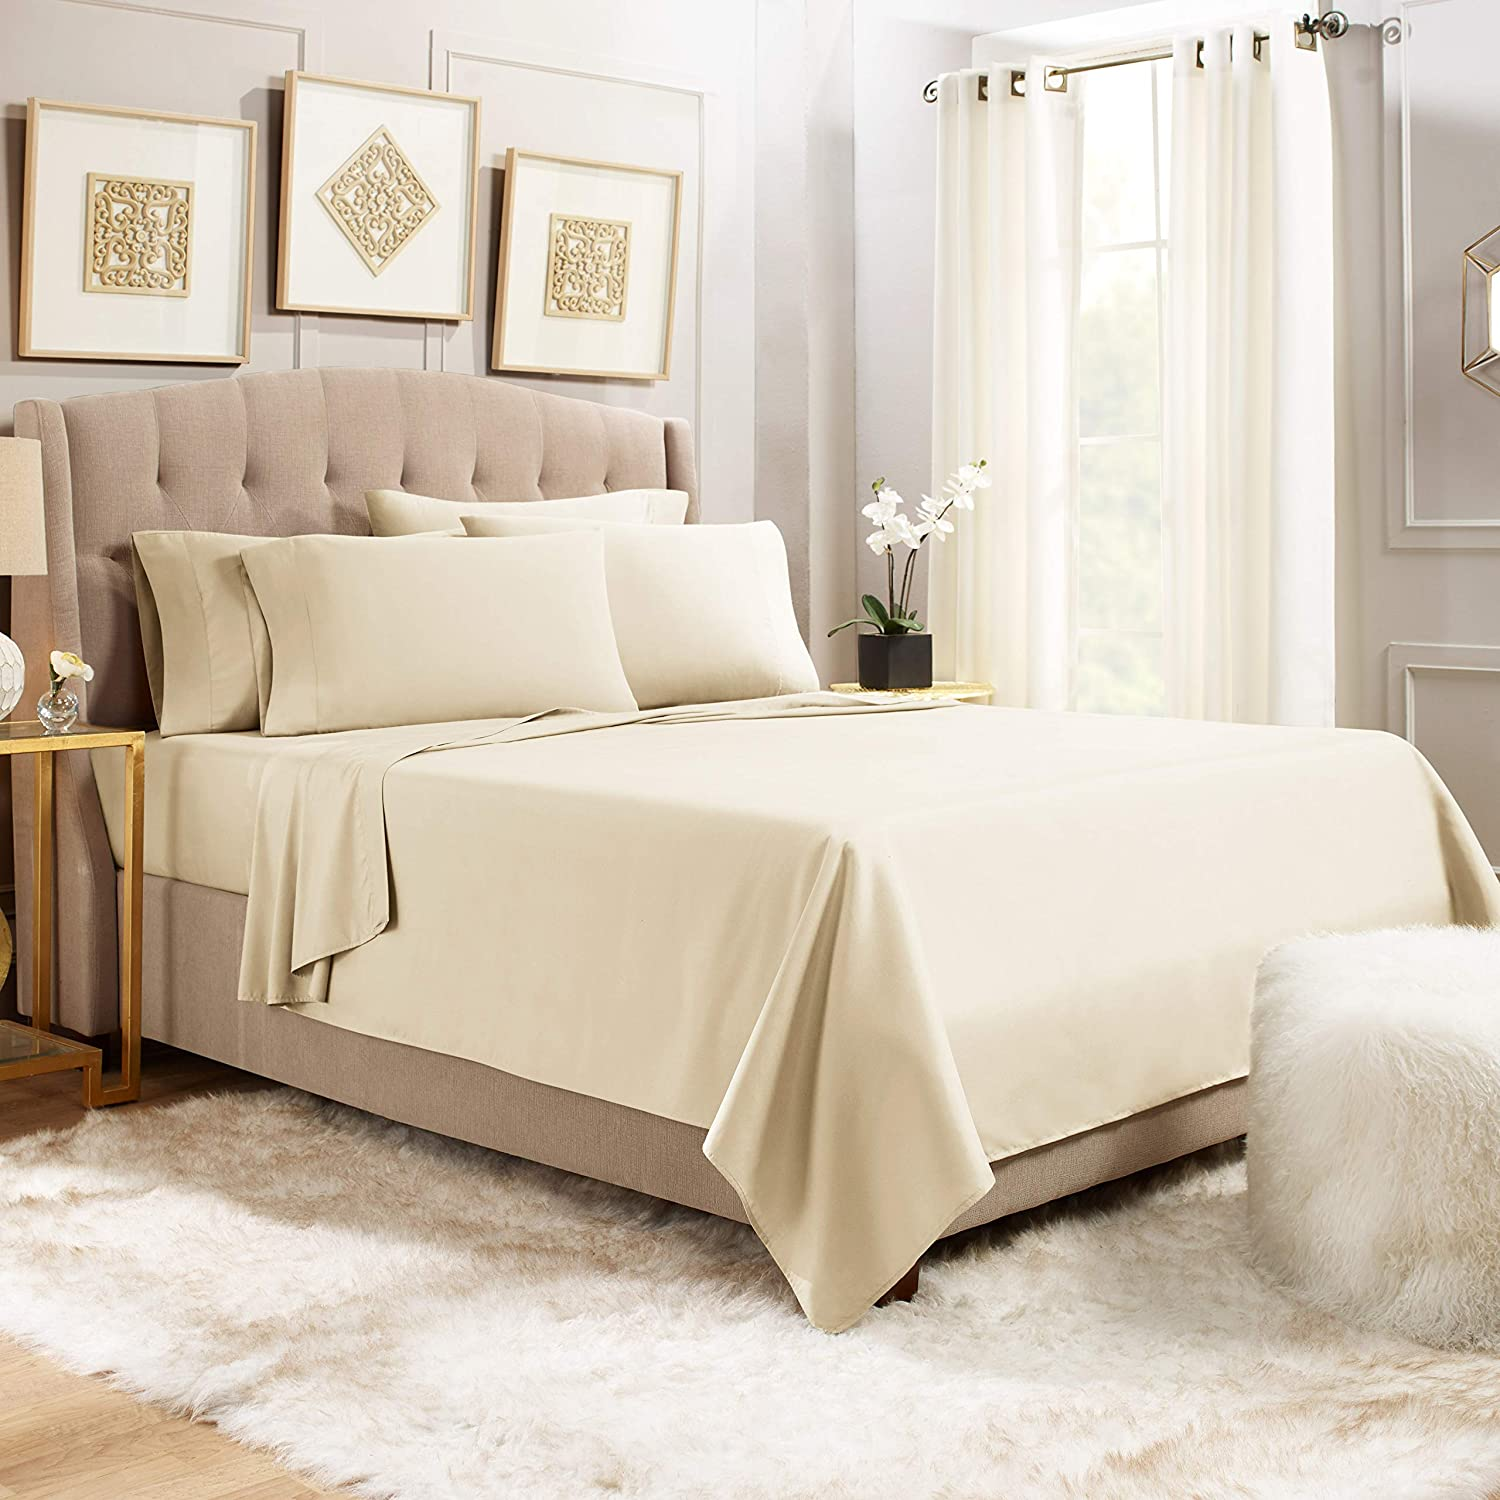 Empyrean Stronger Bed Sheet Set – Holds Longer 110 GSM Heavyweight - Luxury Soft Double Brushed Microfiber – 6 Piece Sheets with 4 Pillowcases – Tight Fit Straps Fitted Sheet – King Size Beige Cream